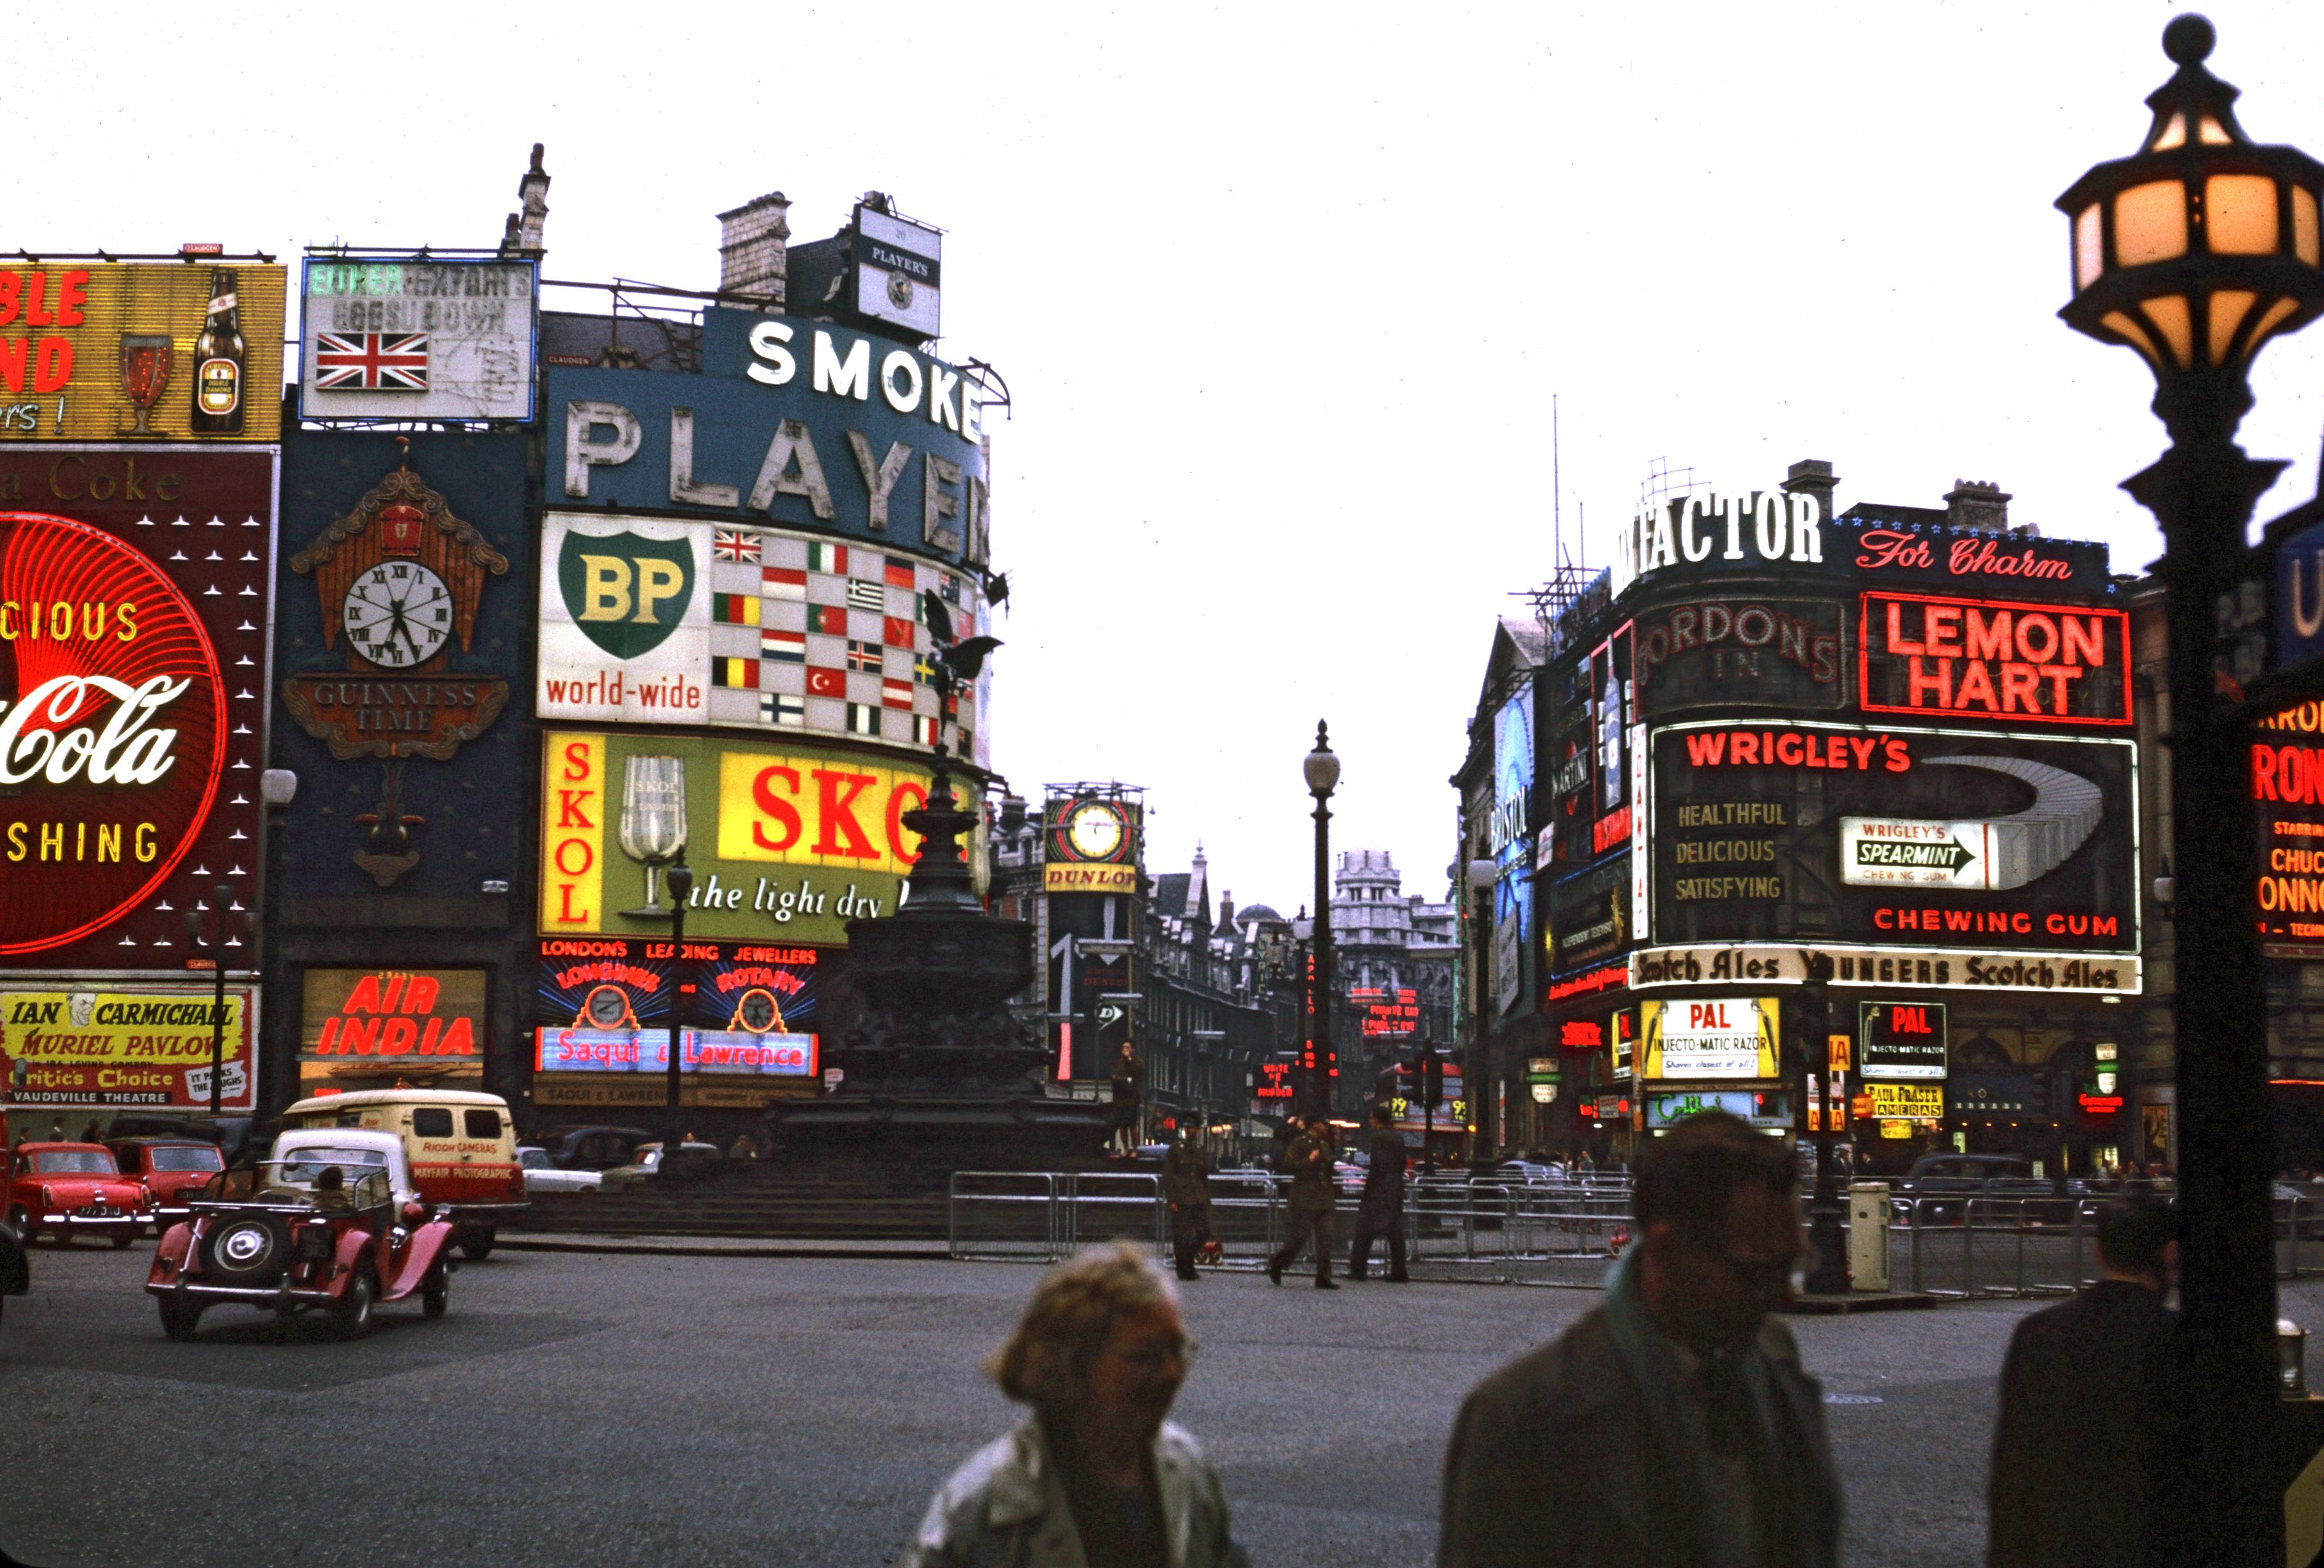 Piccadilly Circus, London. 1962